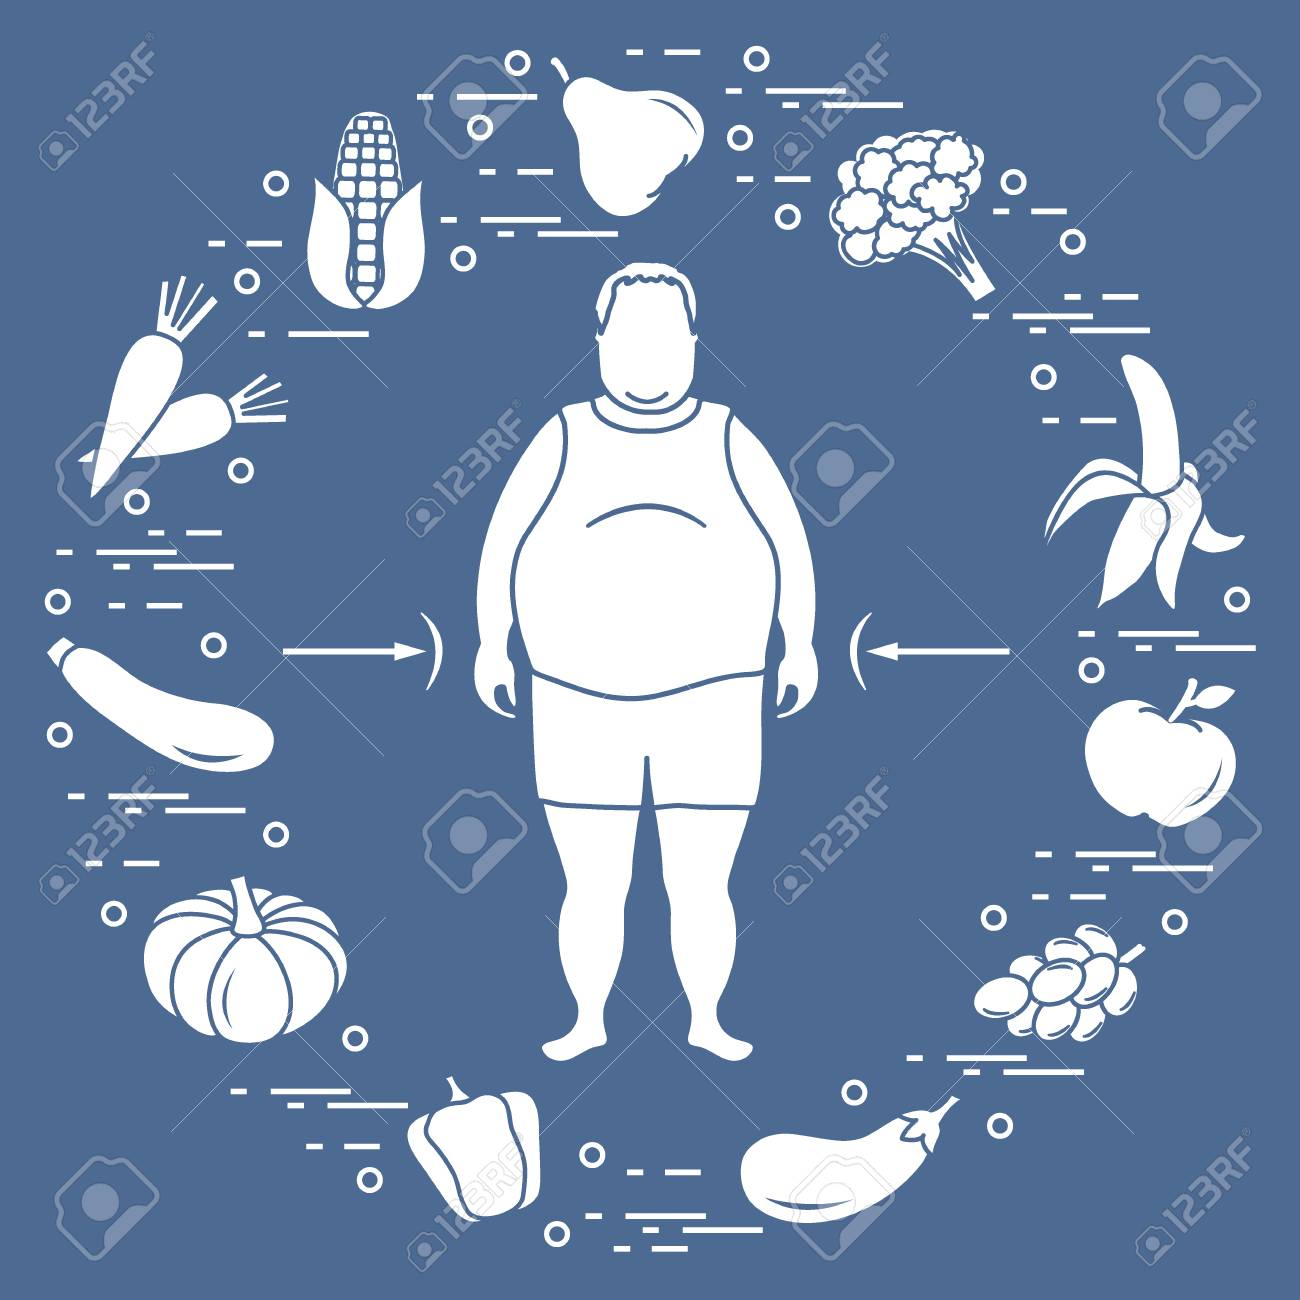 Fat man with healthy food around him. Healthy eating habits. Design for banner and print. - 94738623